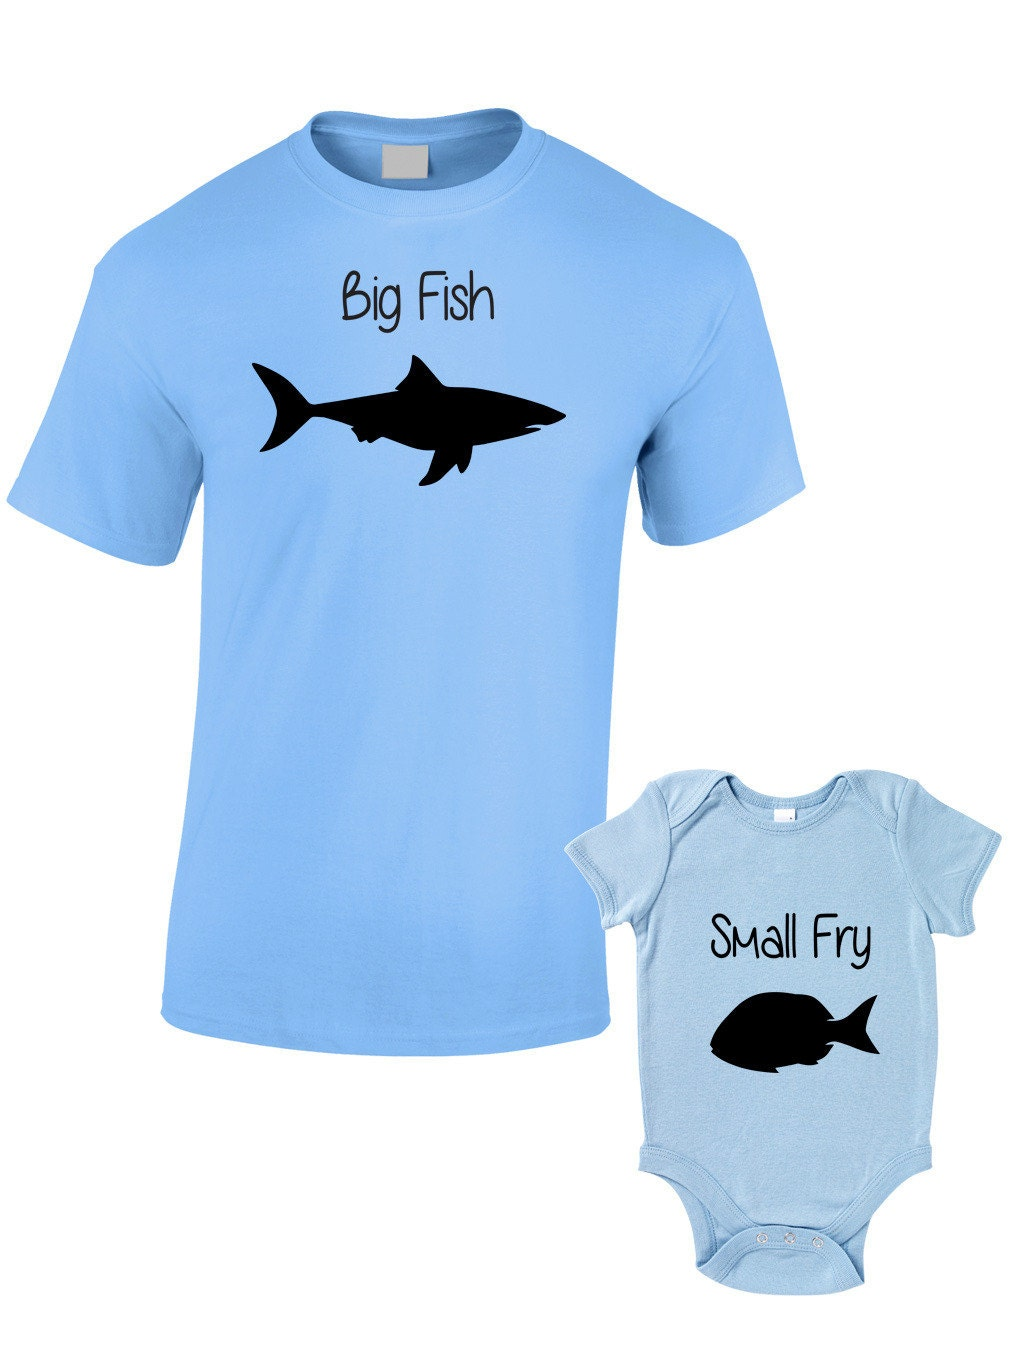 Big Fish Little Fry T Shirts Or Baby Grow Matching Father